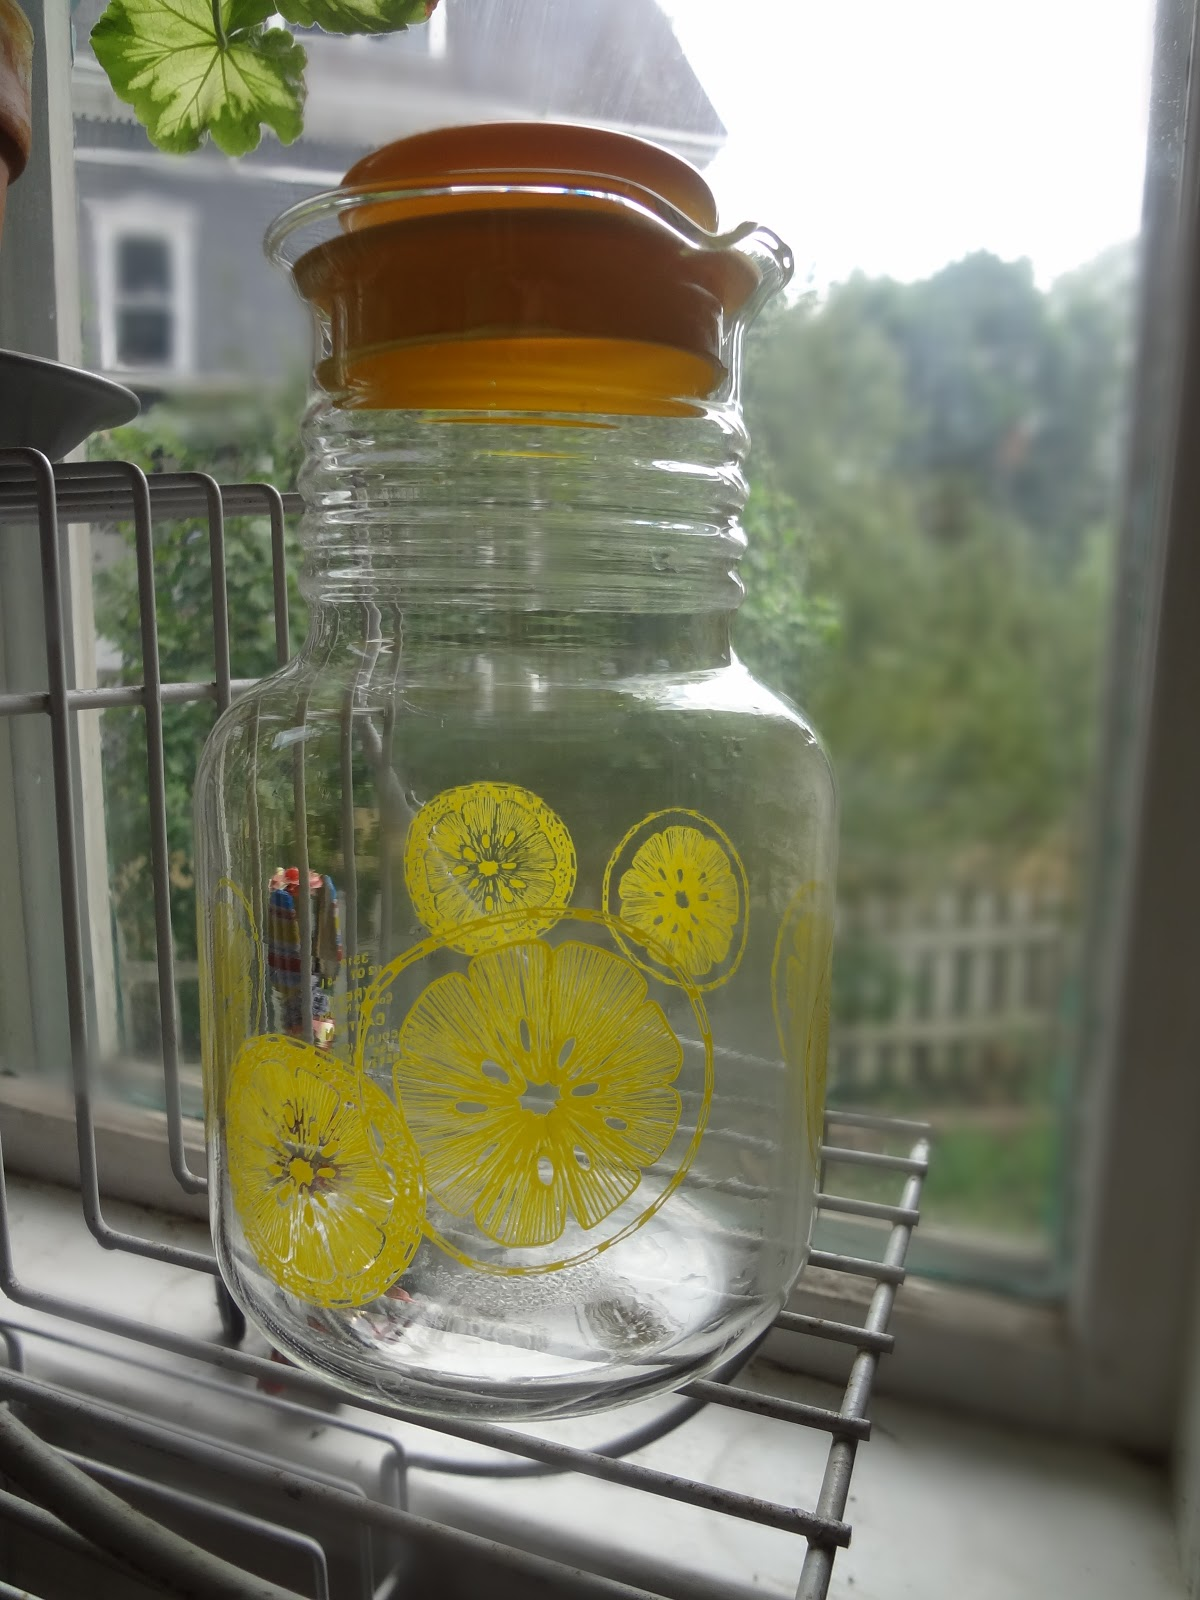 How to Make Any Type of Lemonade Without a Recipe |Real Pitcher Of Lemonade